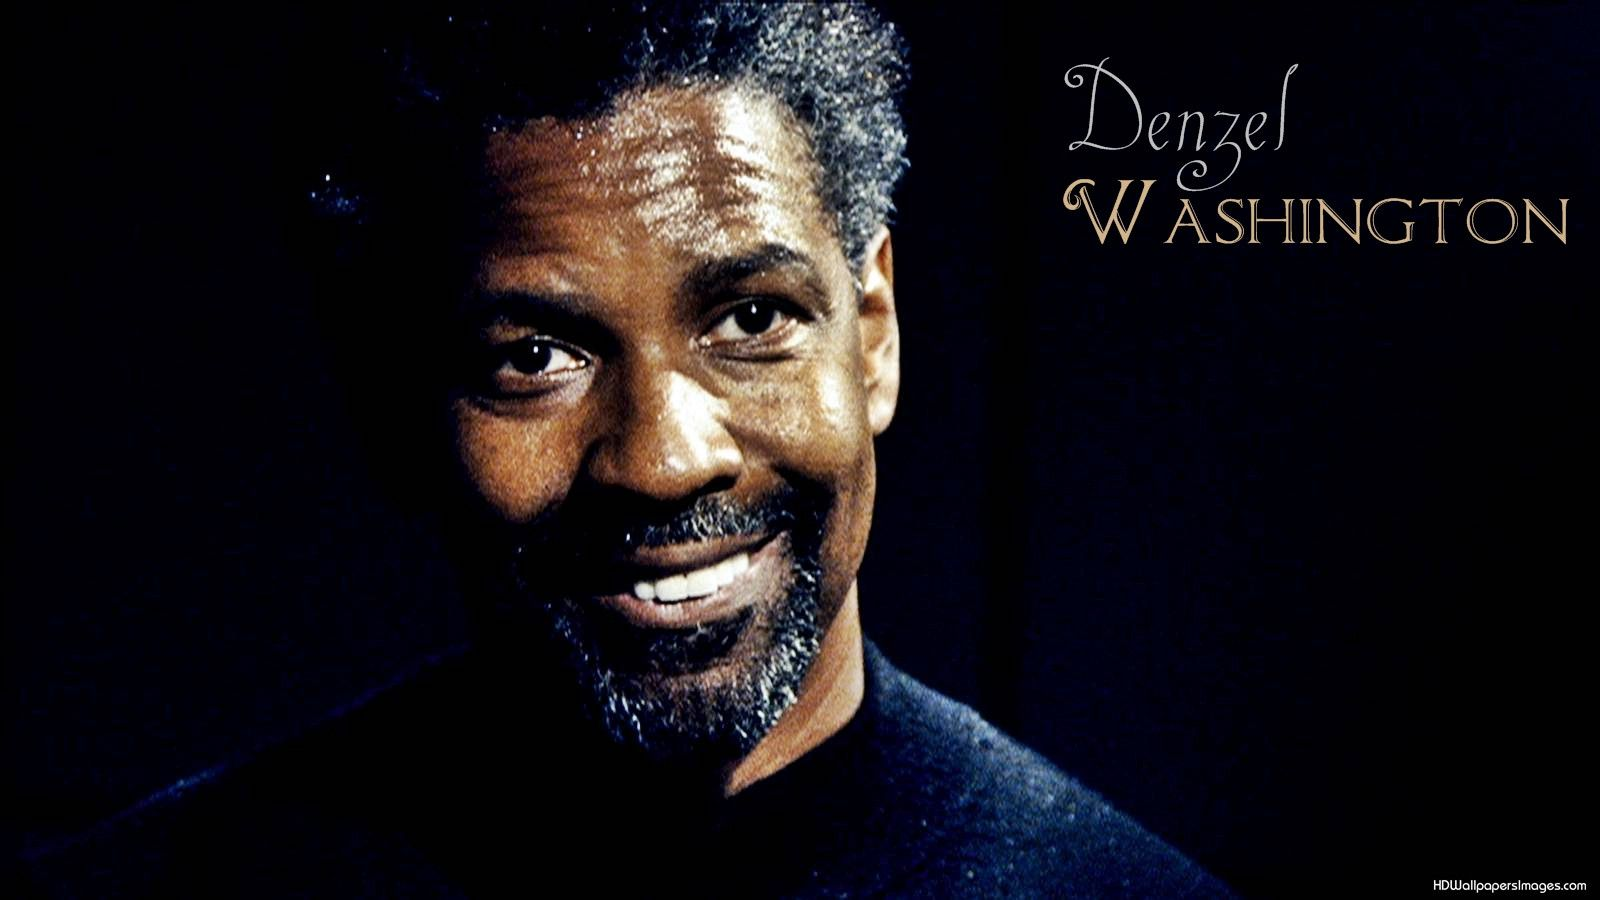 Denzel washington photo shoot Best Photo Editing Software of 2018 - TopTenReviews